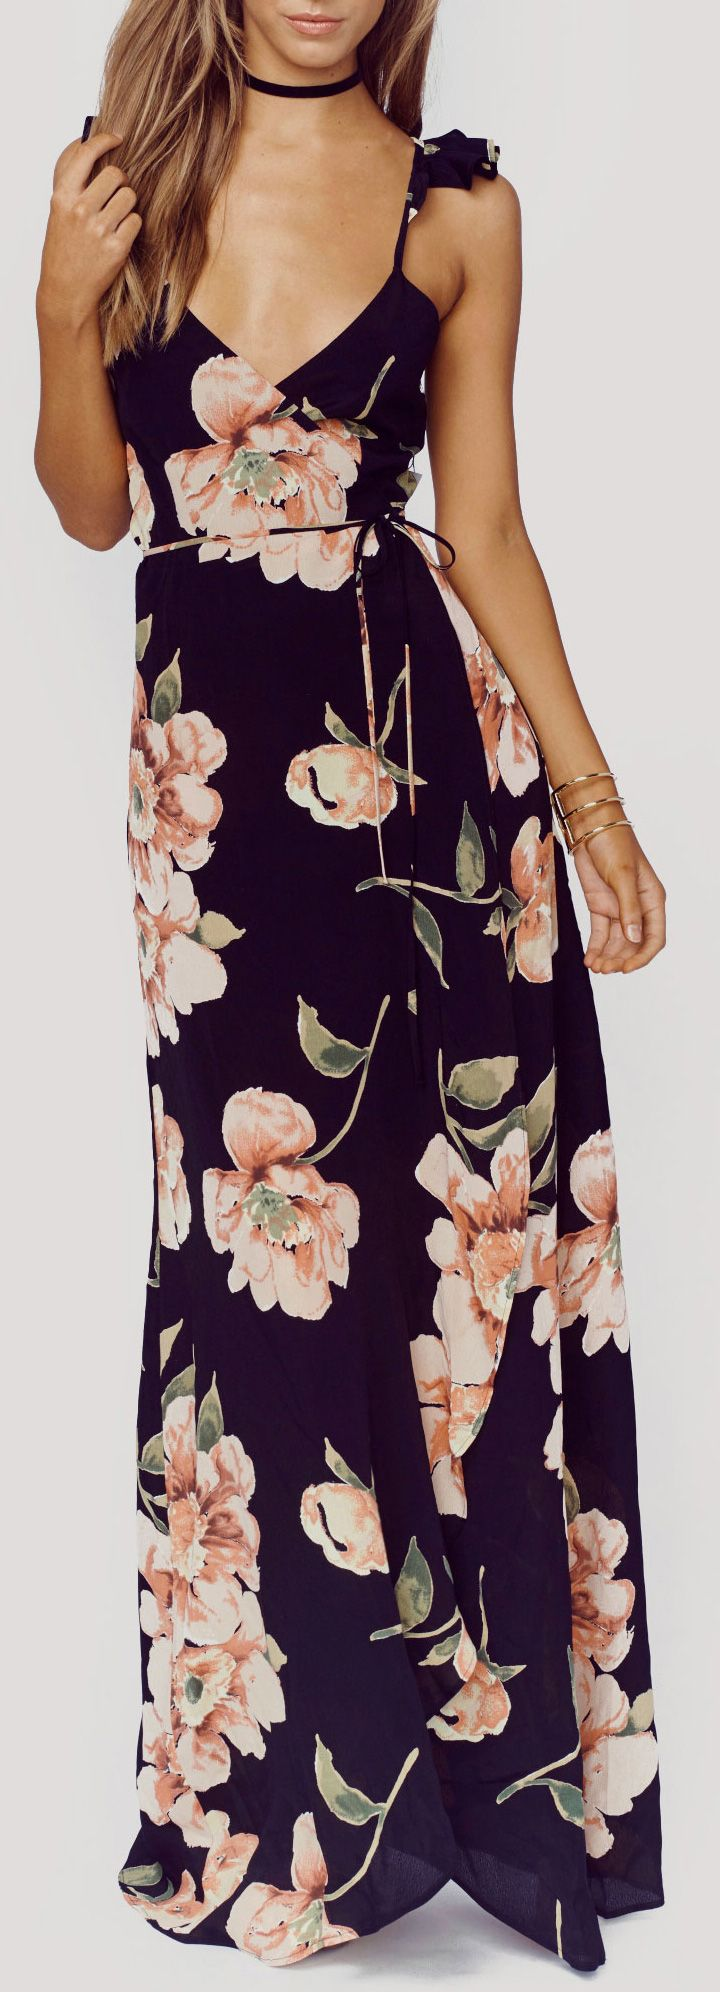 Best 25 floral maxi dress ideas on pinterest spring for Black floral dress to a wedding